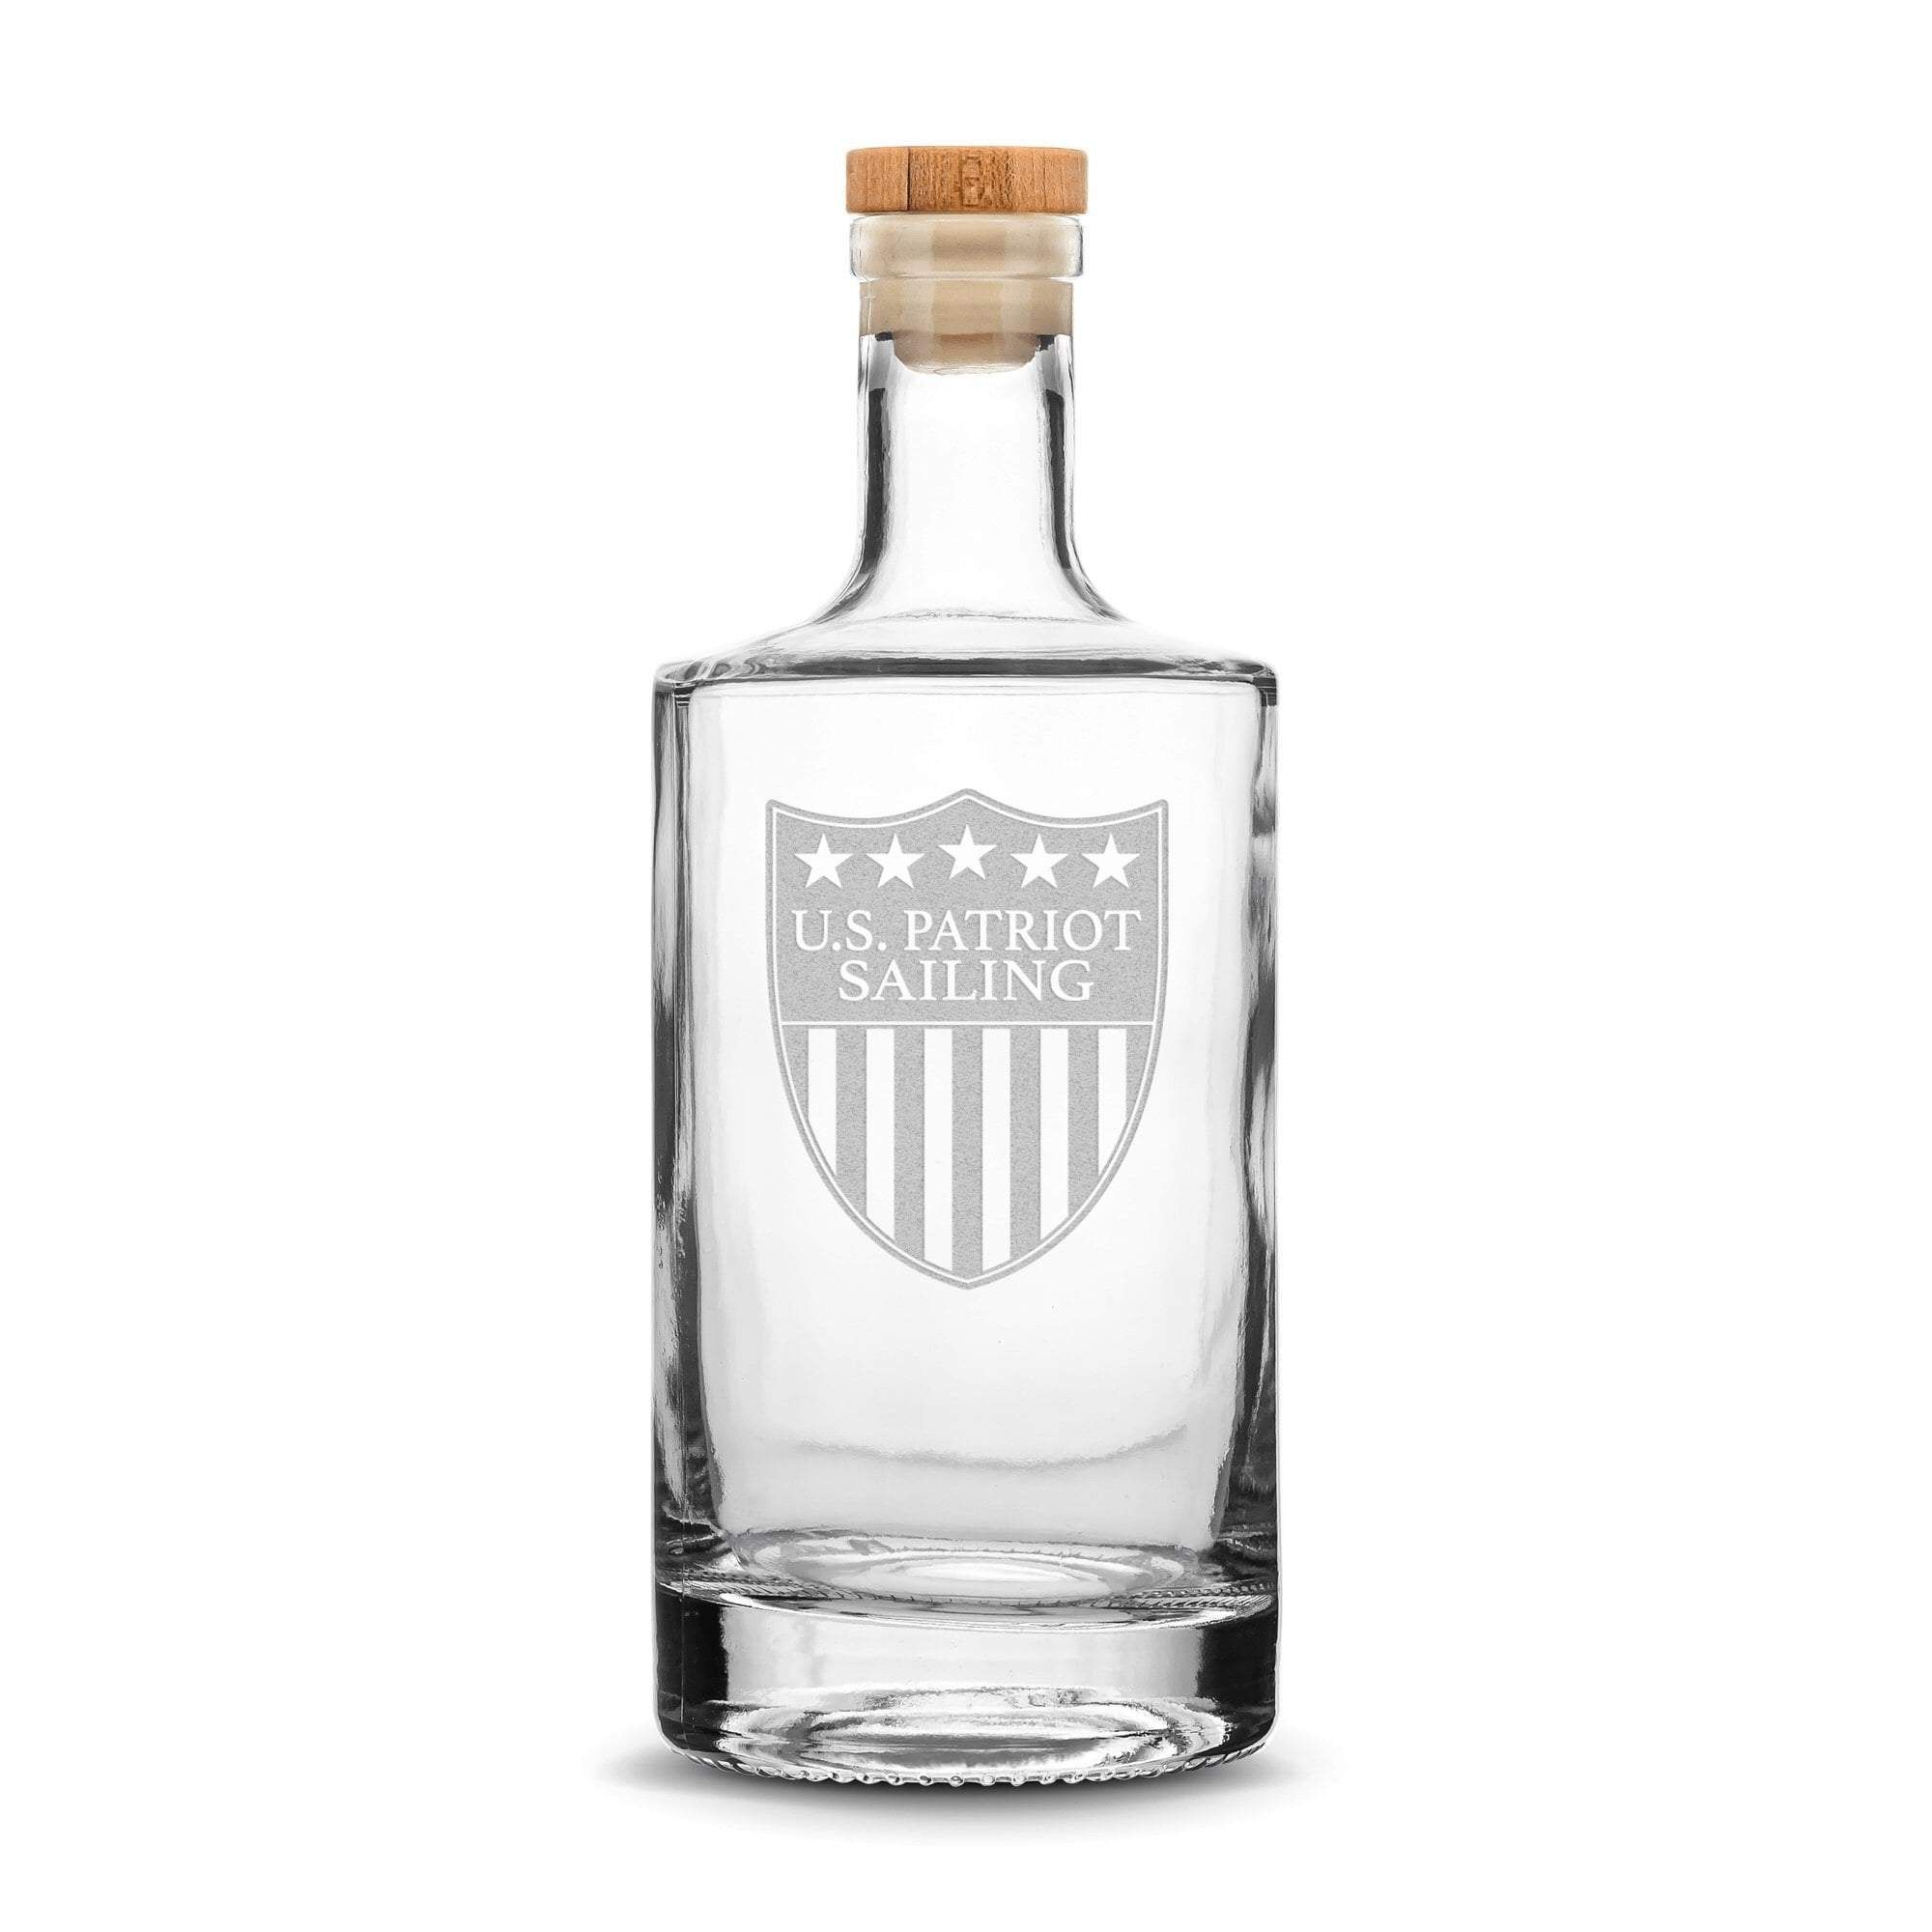 Premium Refillable Jersey Bottle, US Patriot Sailing Logo, 750mL Integrity Bottles